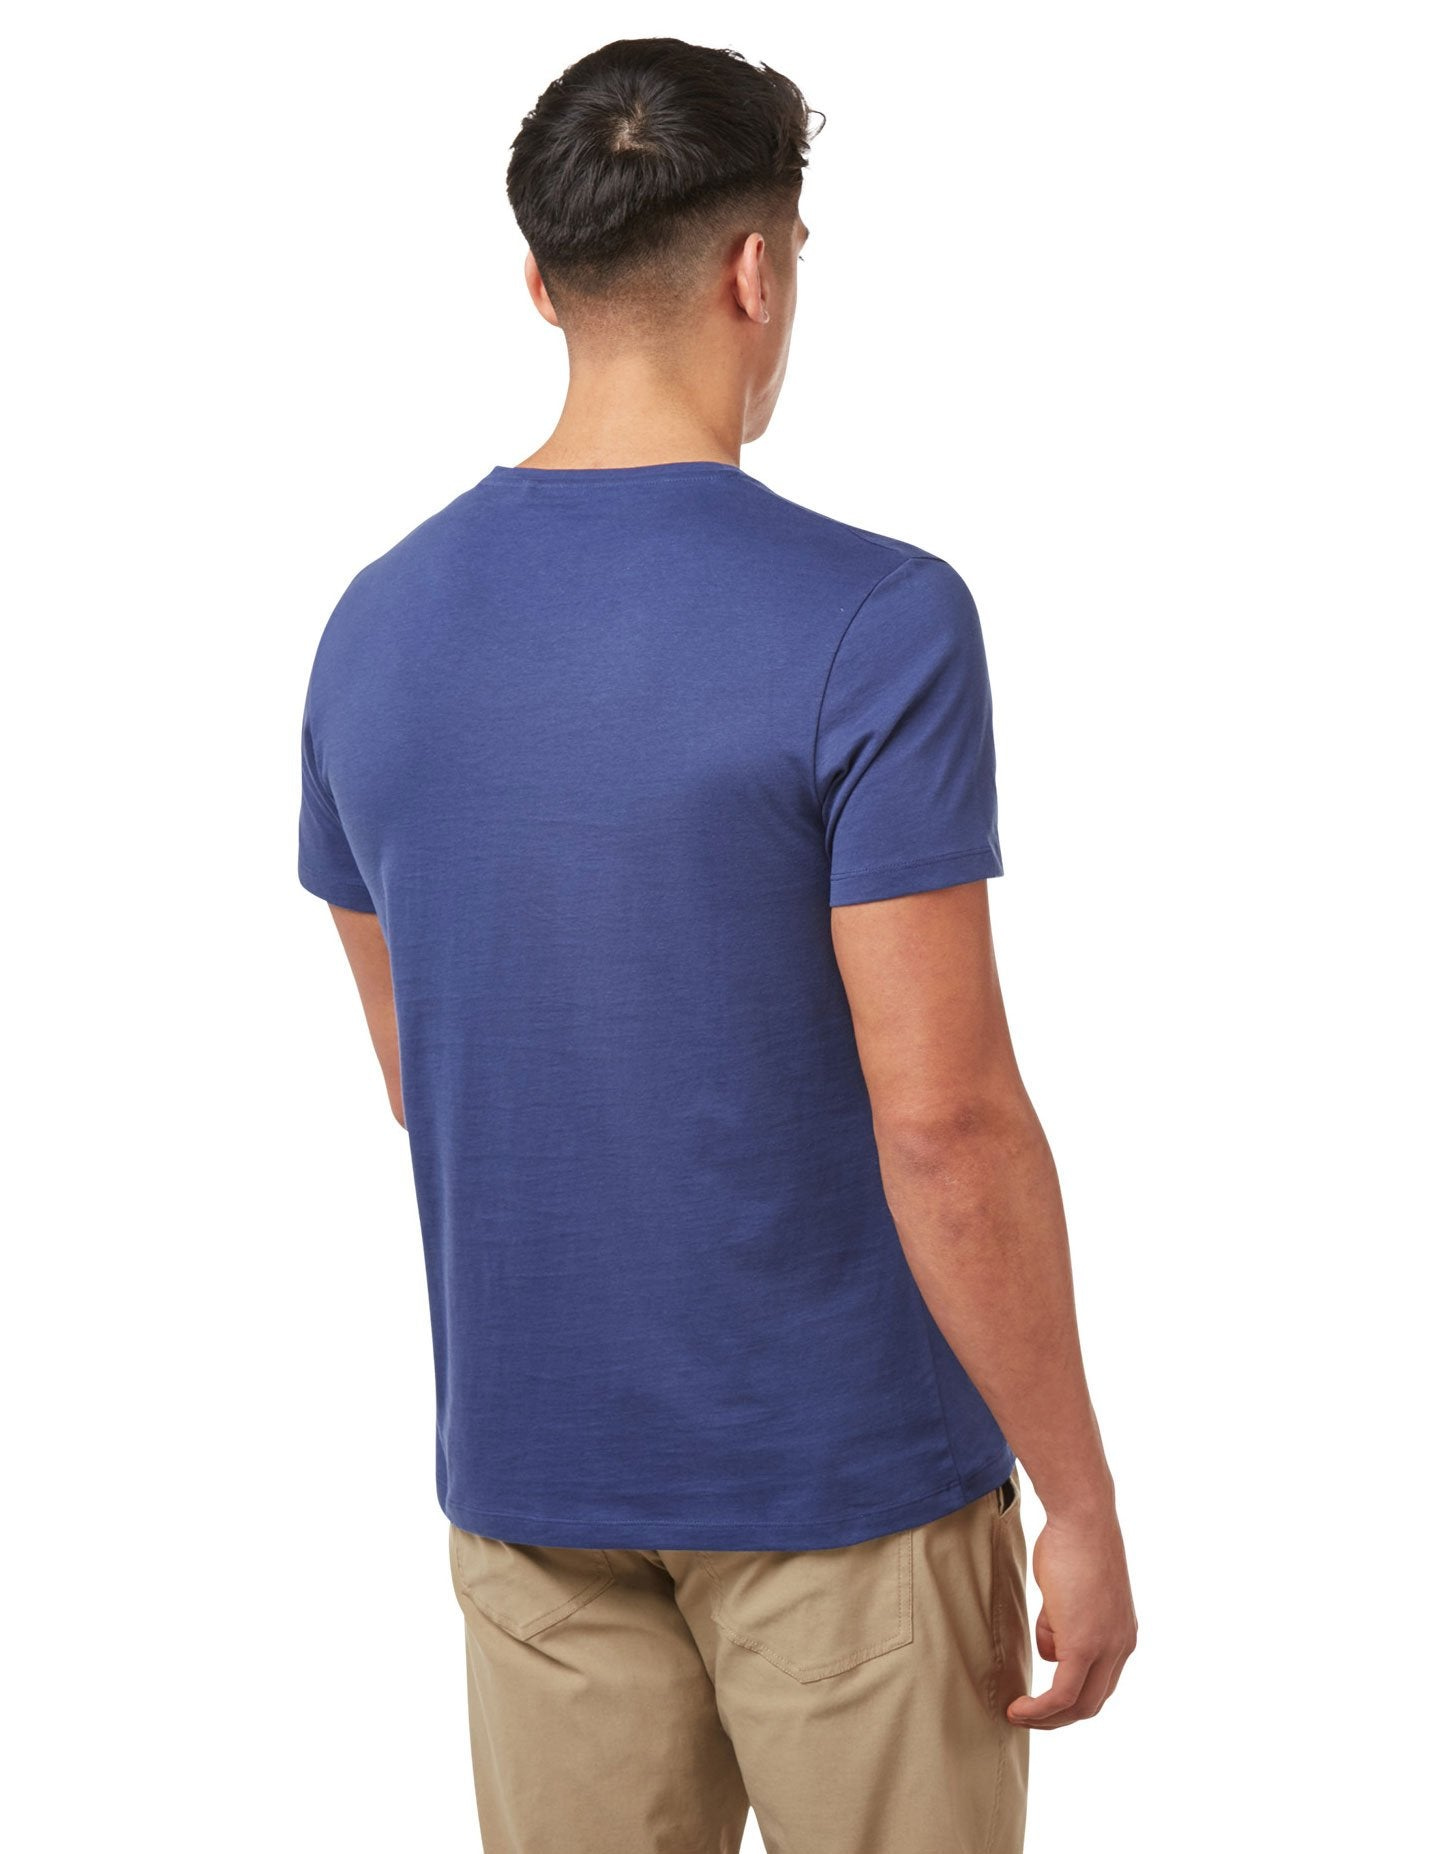 Blue Nelson T-Shirt by Craghoppers  back view